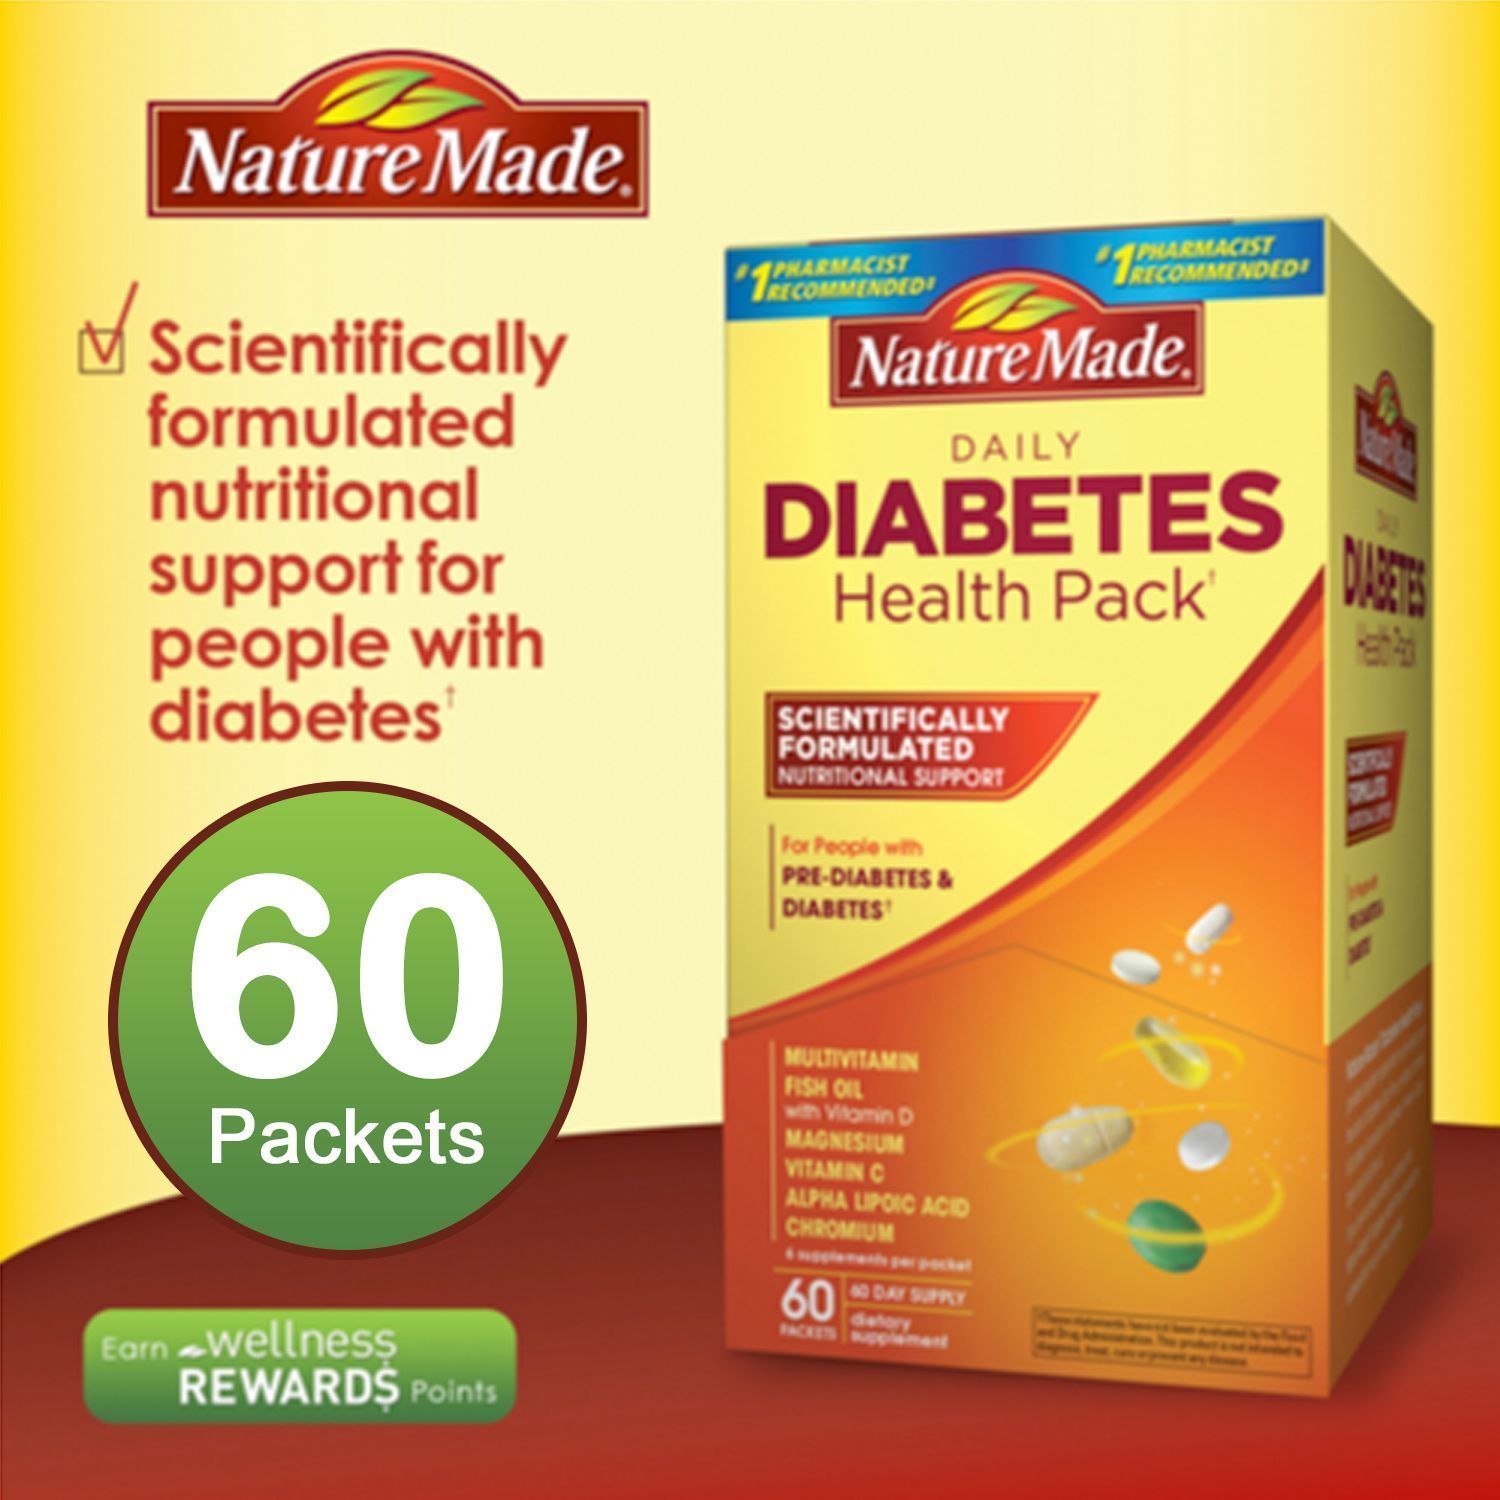 Nature Made Diabetic Health Pack 60 Packets 6 Supplements Packet